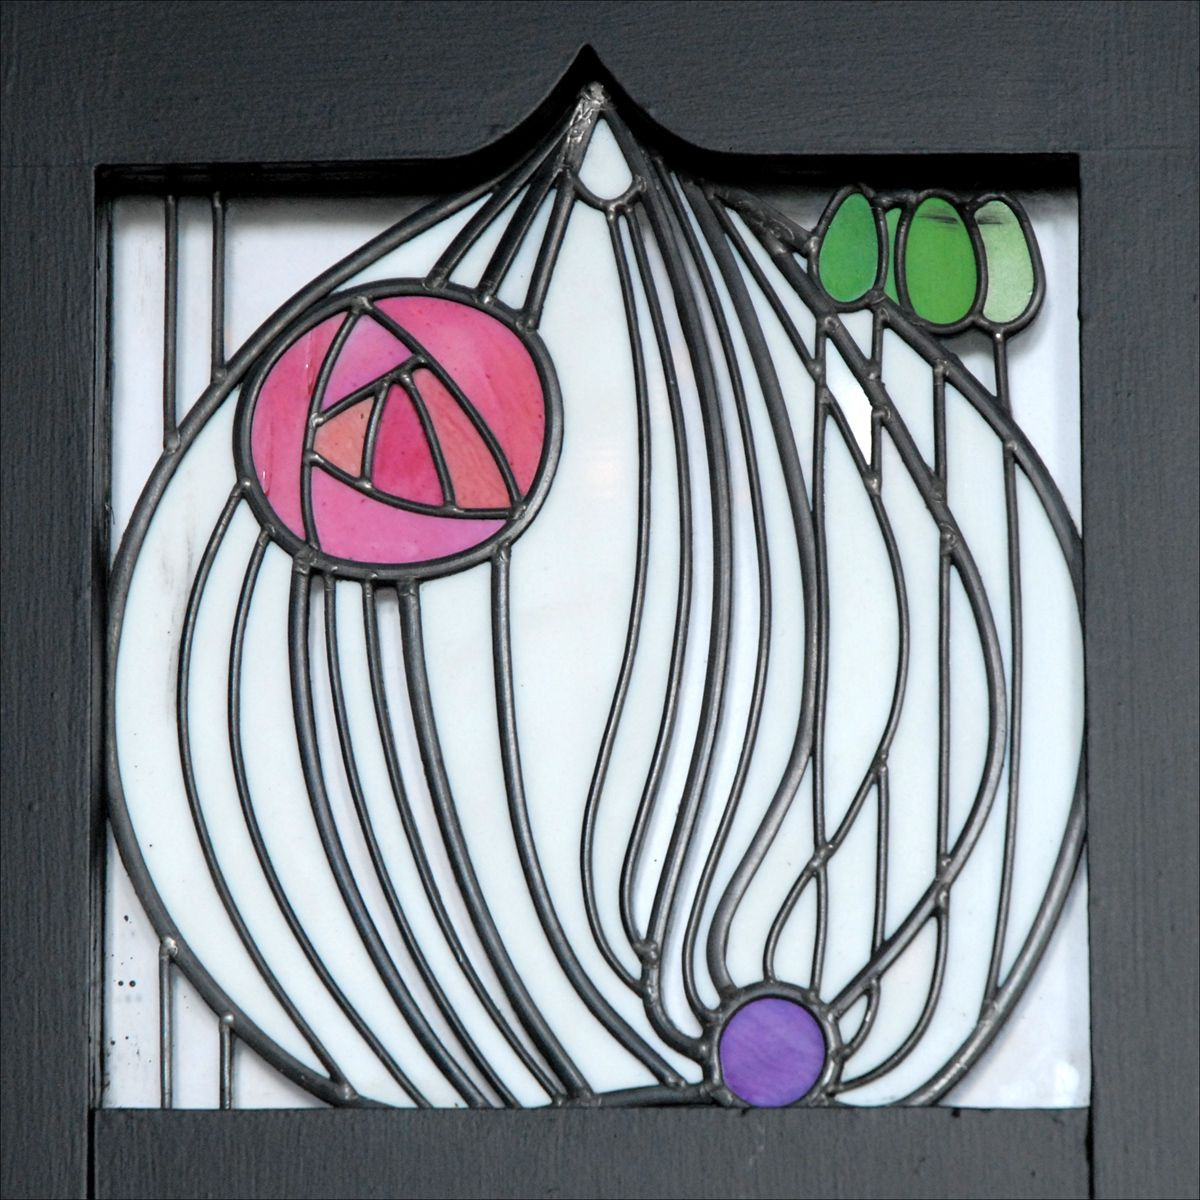 charles rennie mackintosh charles rennie mackintosh stained glass panels and glass. Black Bedroom Furniture Sets. Home Design Ideas